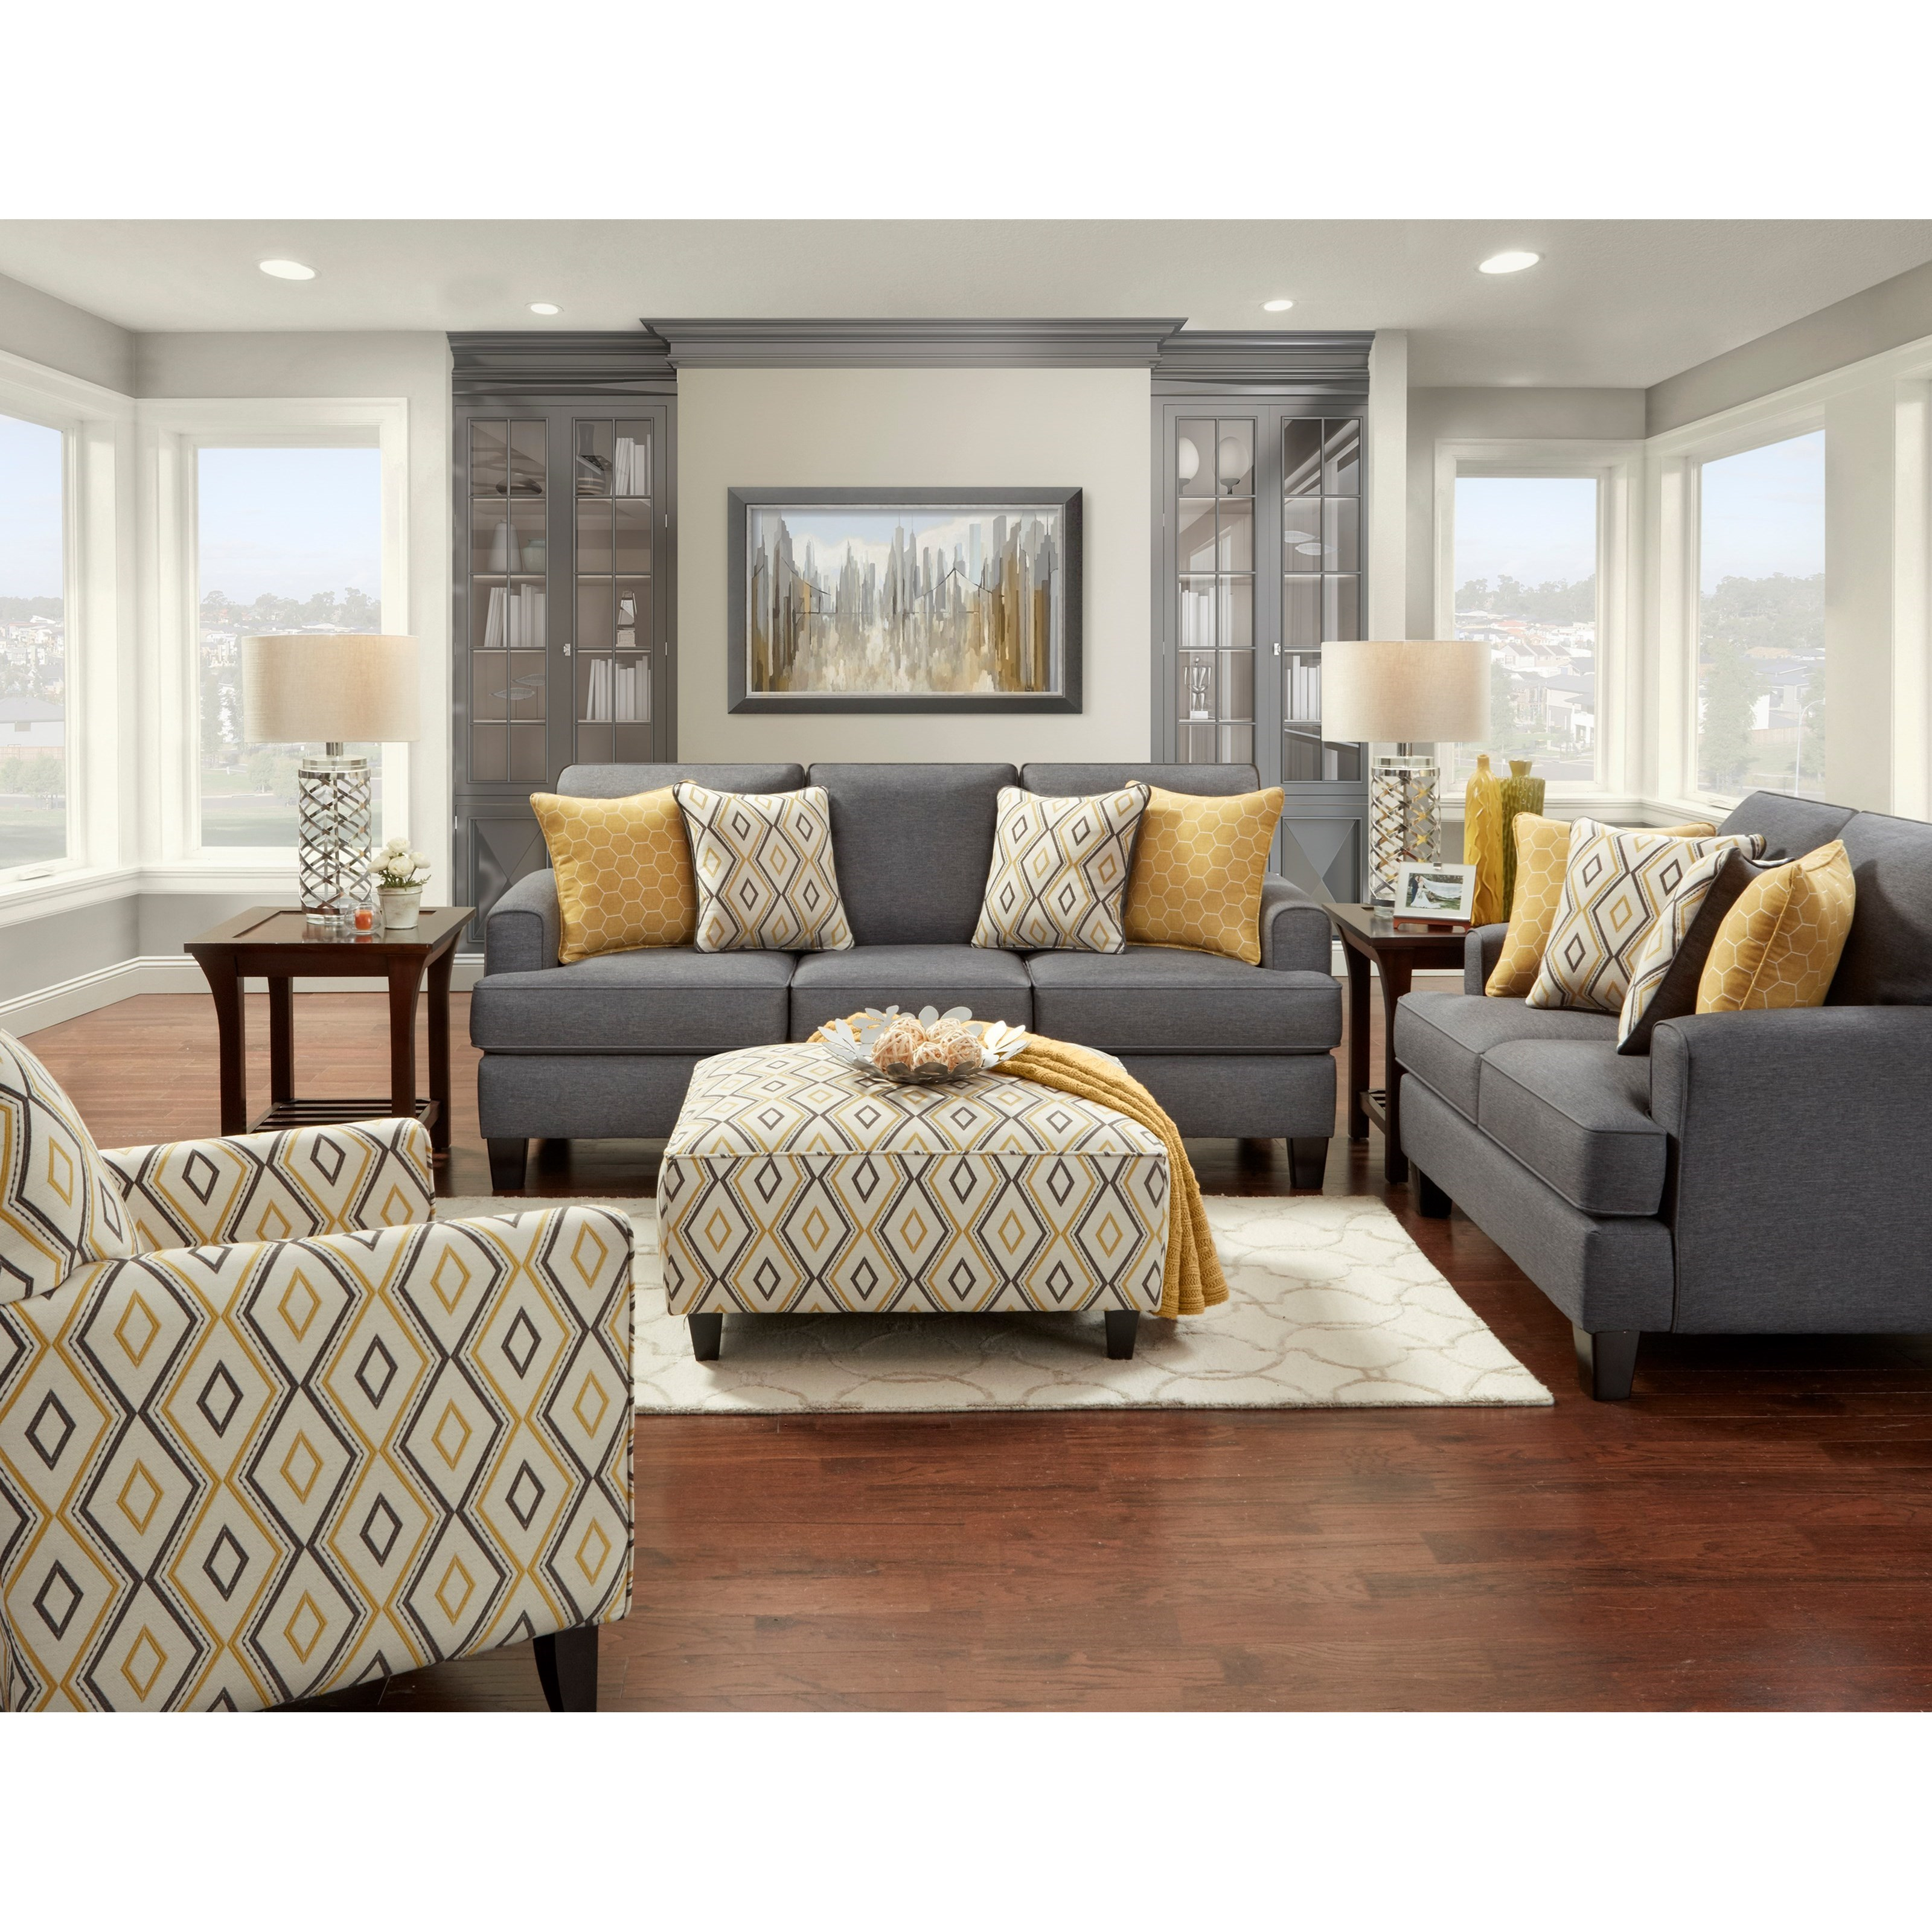 2600 Stationary Living Room Group by Fusion Furniture at Wilson's Furniture